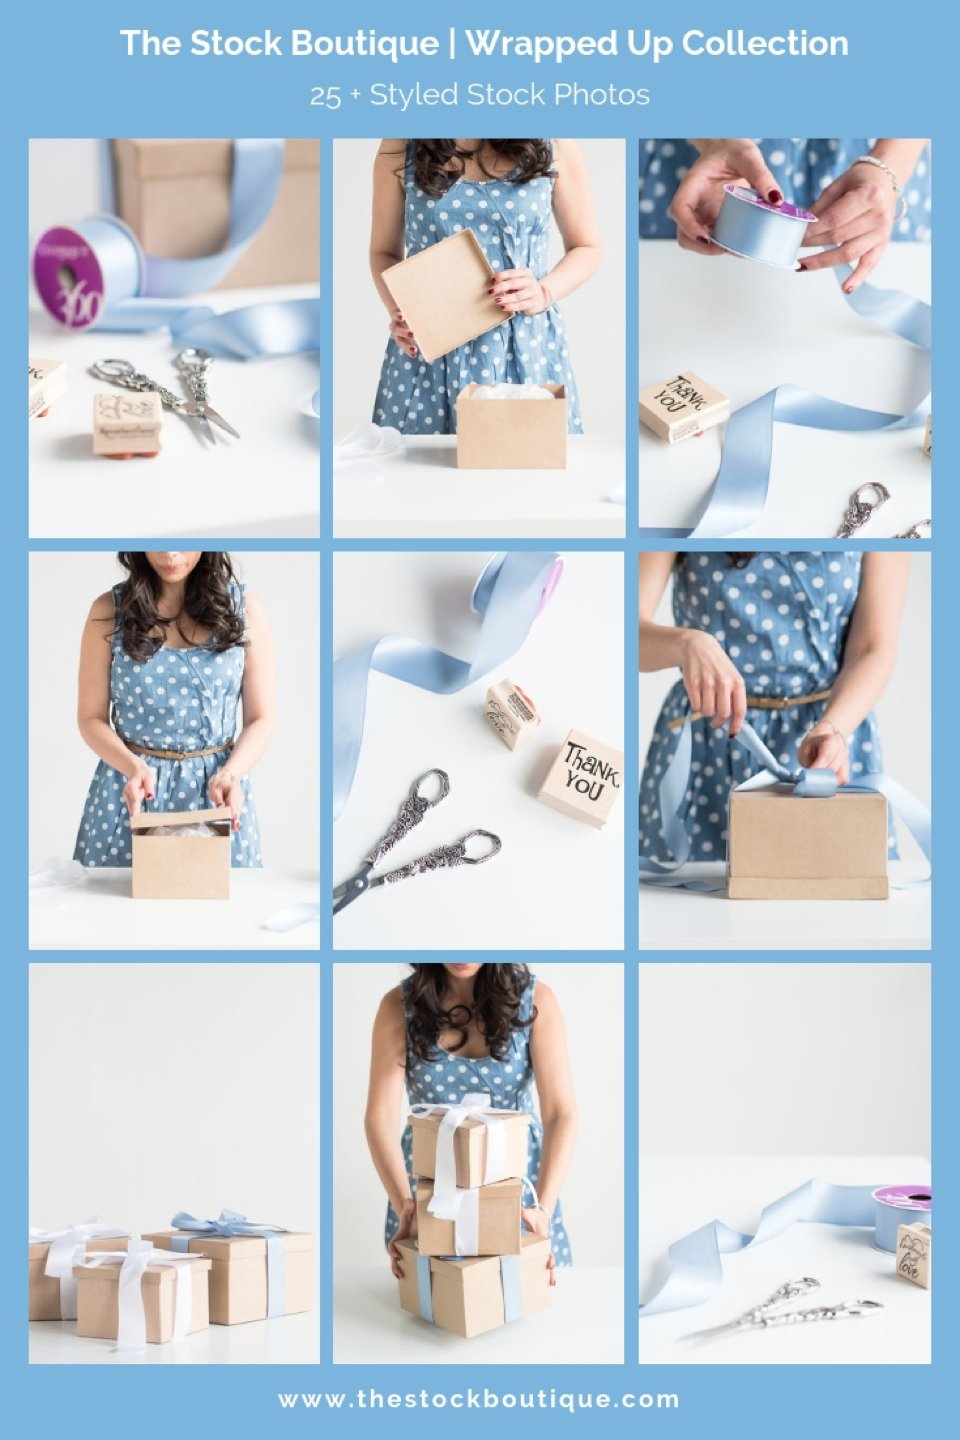 Female entrepreneur stock photography! Wrapped Up stock photography collection. We giveaway a FREE stock photo when you subscribe www.thestockboutique.com #stockphotography #stockphotos #femaleentrepreneur #giftwrappinginspiration #creativeentrepreneurs